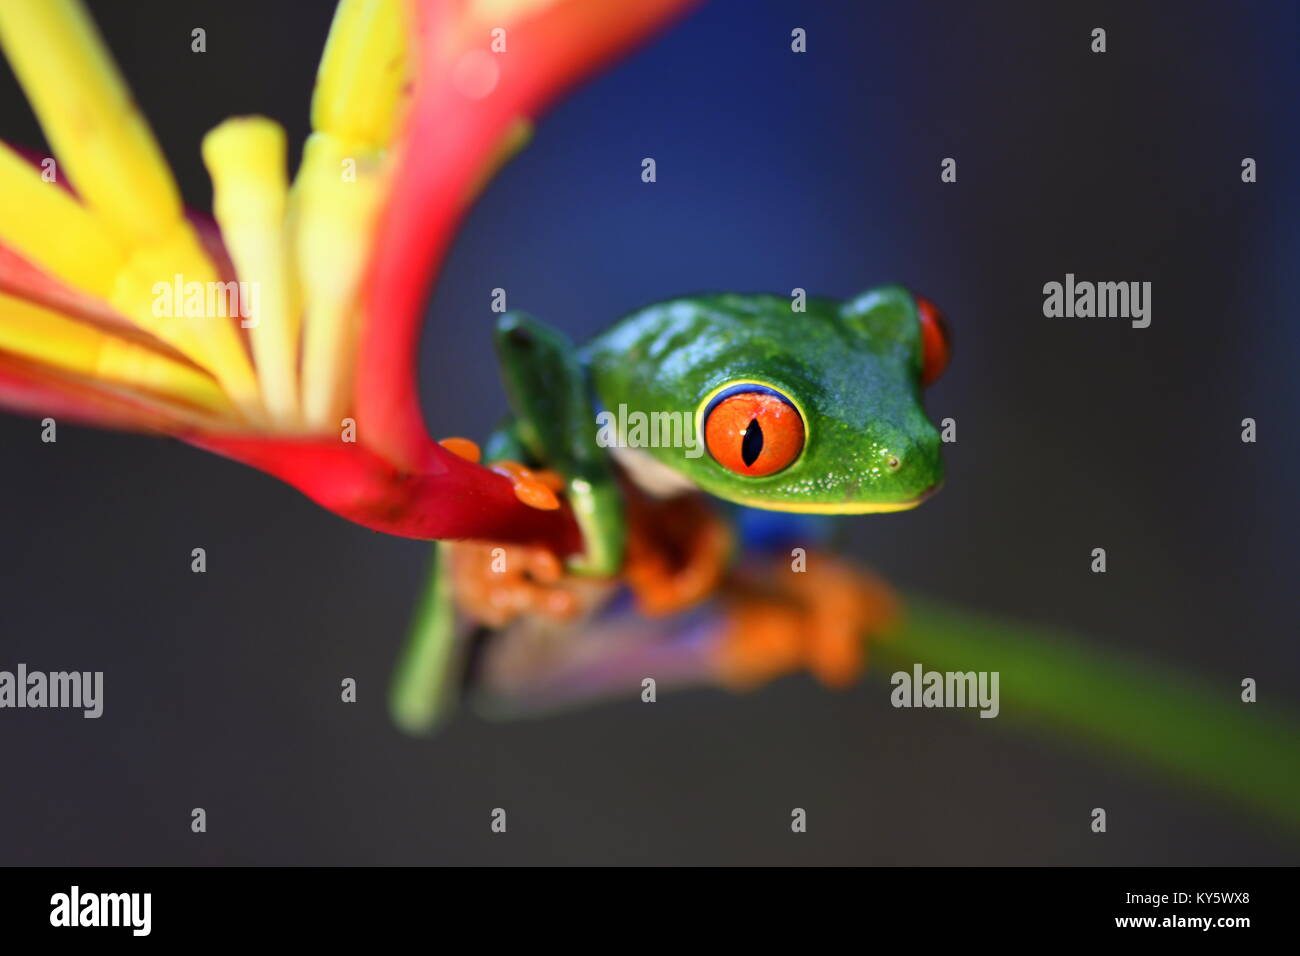 Red-eyed tree frog (Agalychnis callidryas) in Costa Rica lowland jungle - Stock Image